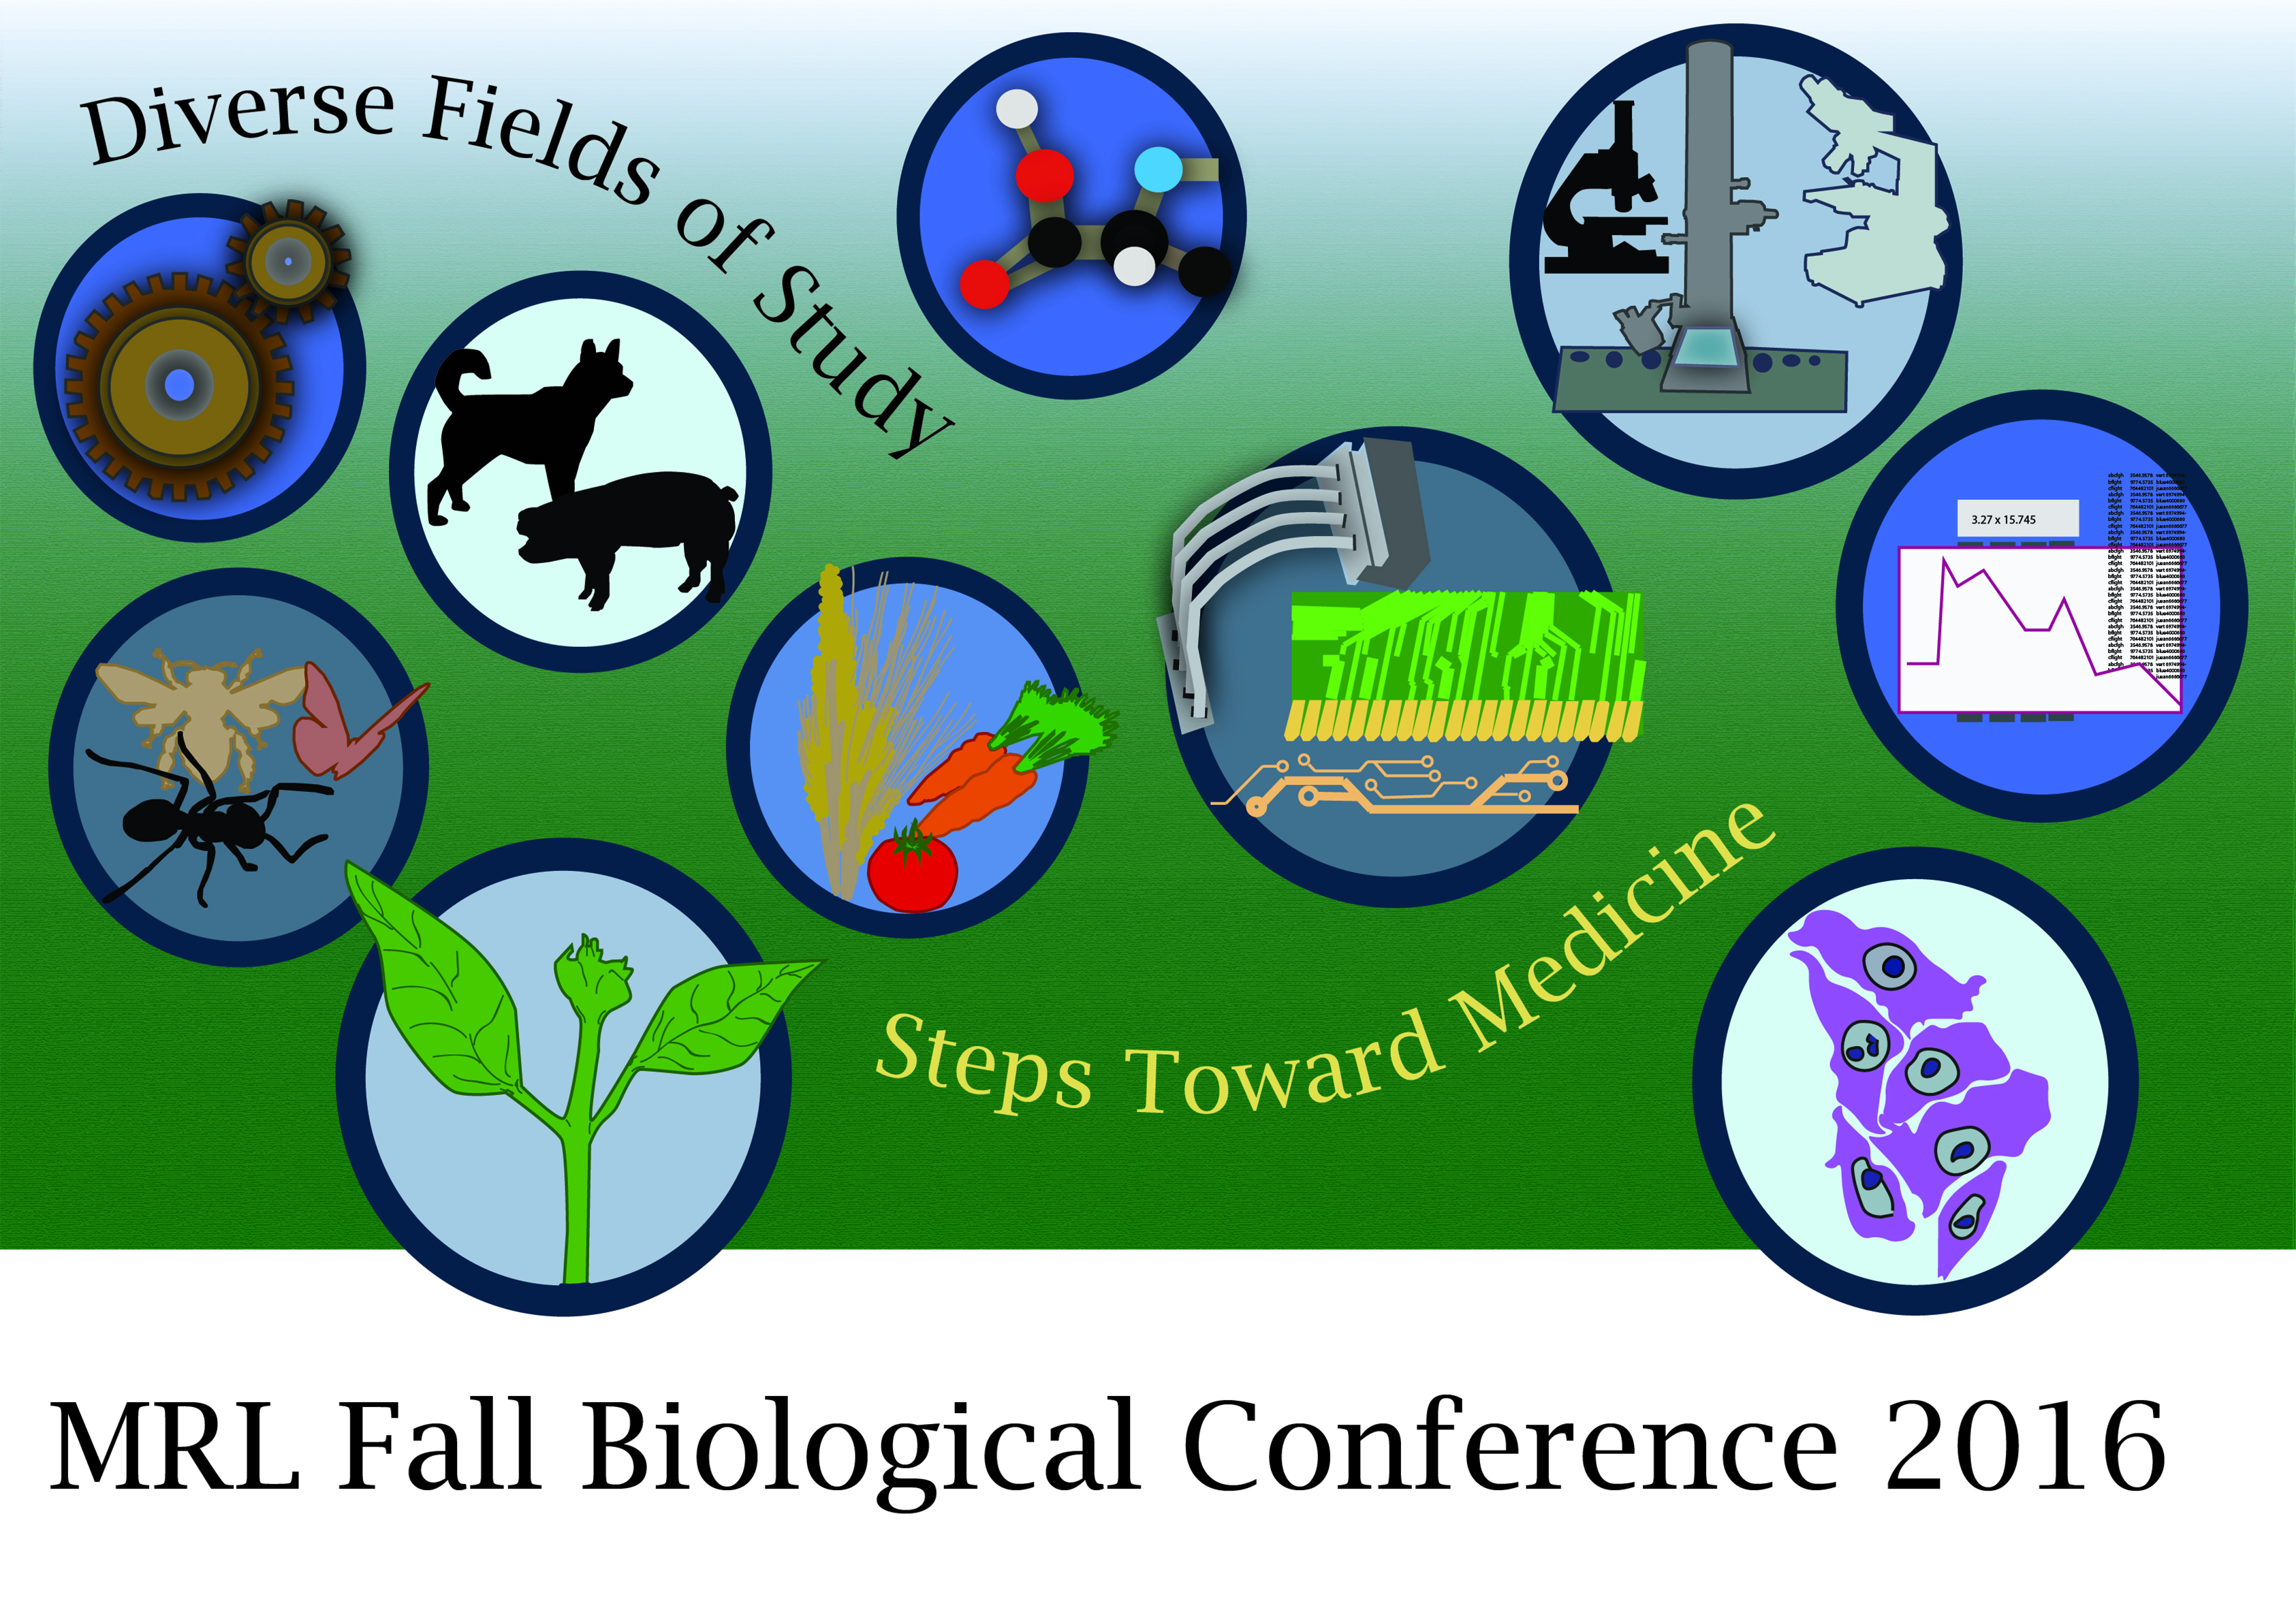 A graphic displaying various fields of study that will be addressed at the MRL event.